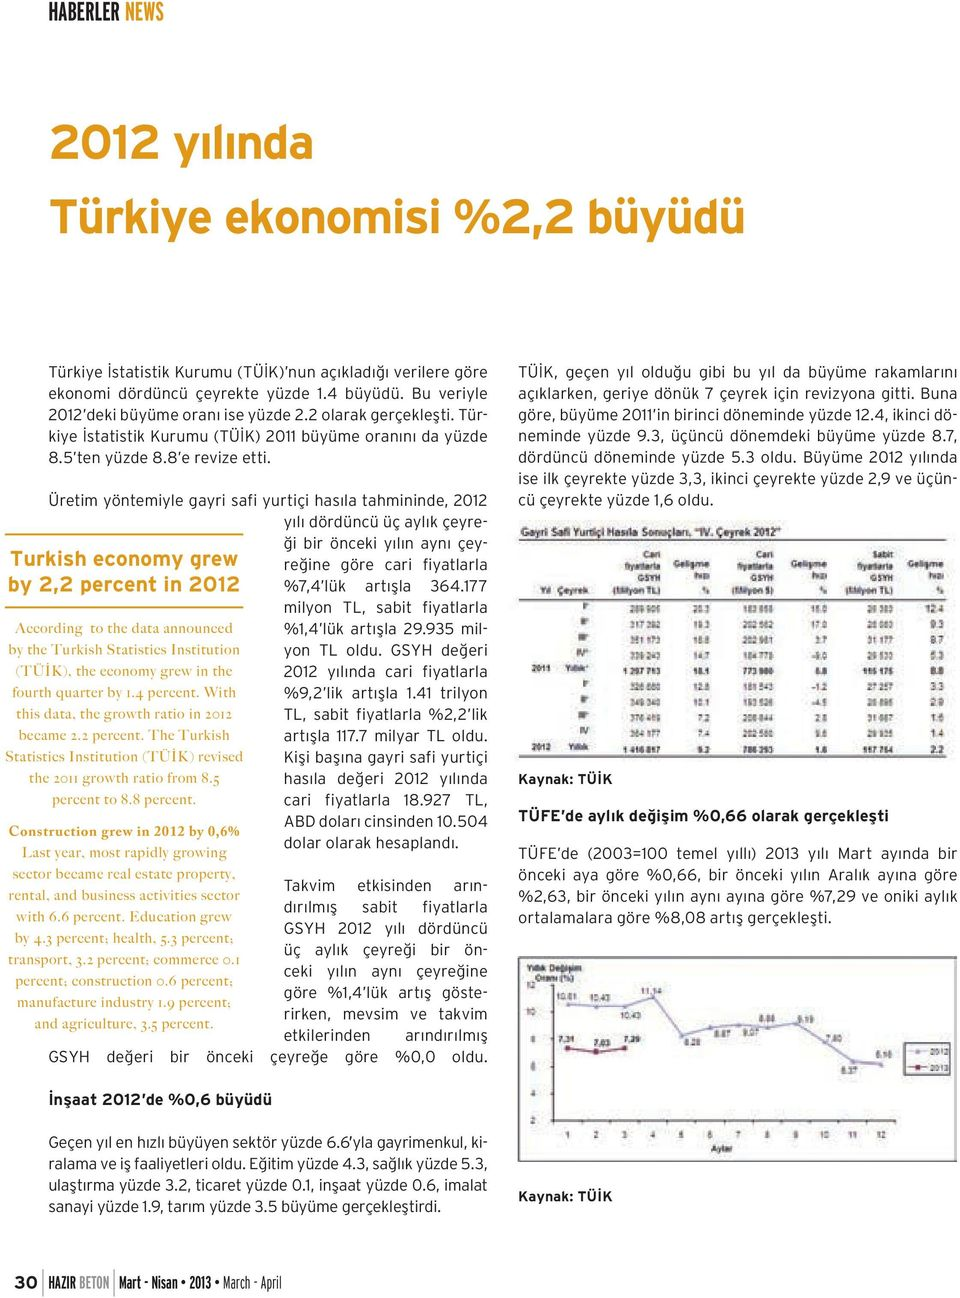 Turkish economy grew by 2,2 percent in 2012 According to the data announced by the Turkish Statistics Institution (TÜİK), the economy grew in the fourth quarter by 1.4 percent.